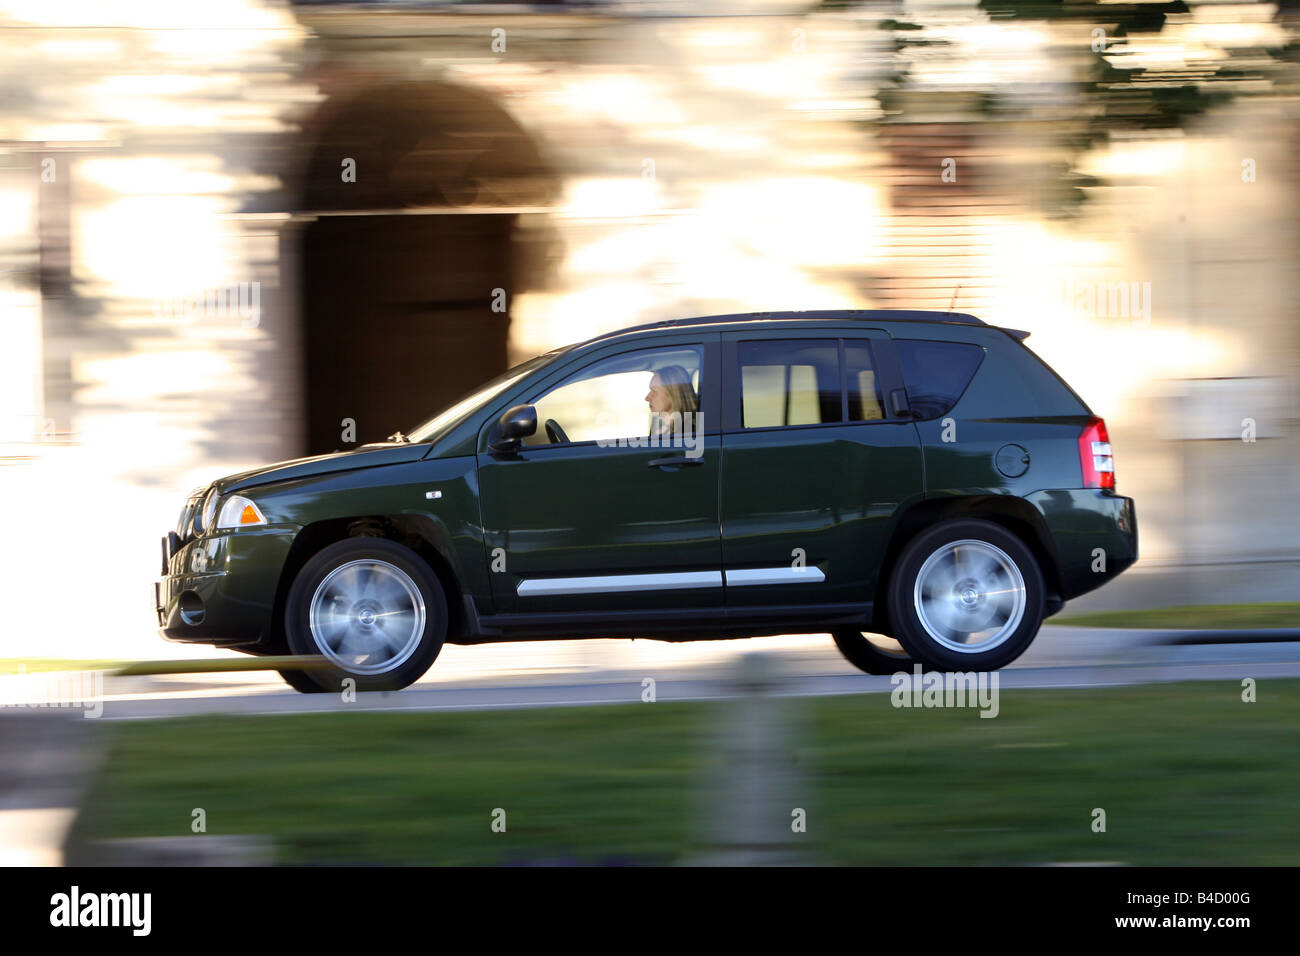 Jeep Compass 2.0 CRD Limited, model year 2007-, green, driving, side view, City - Stock Image